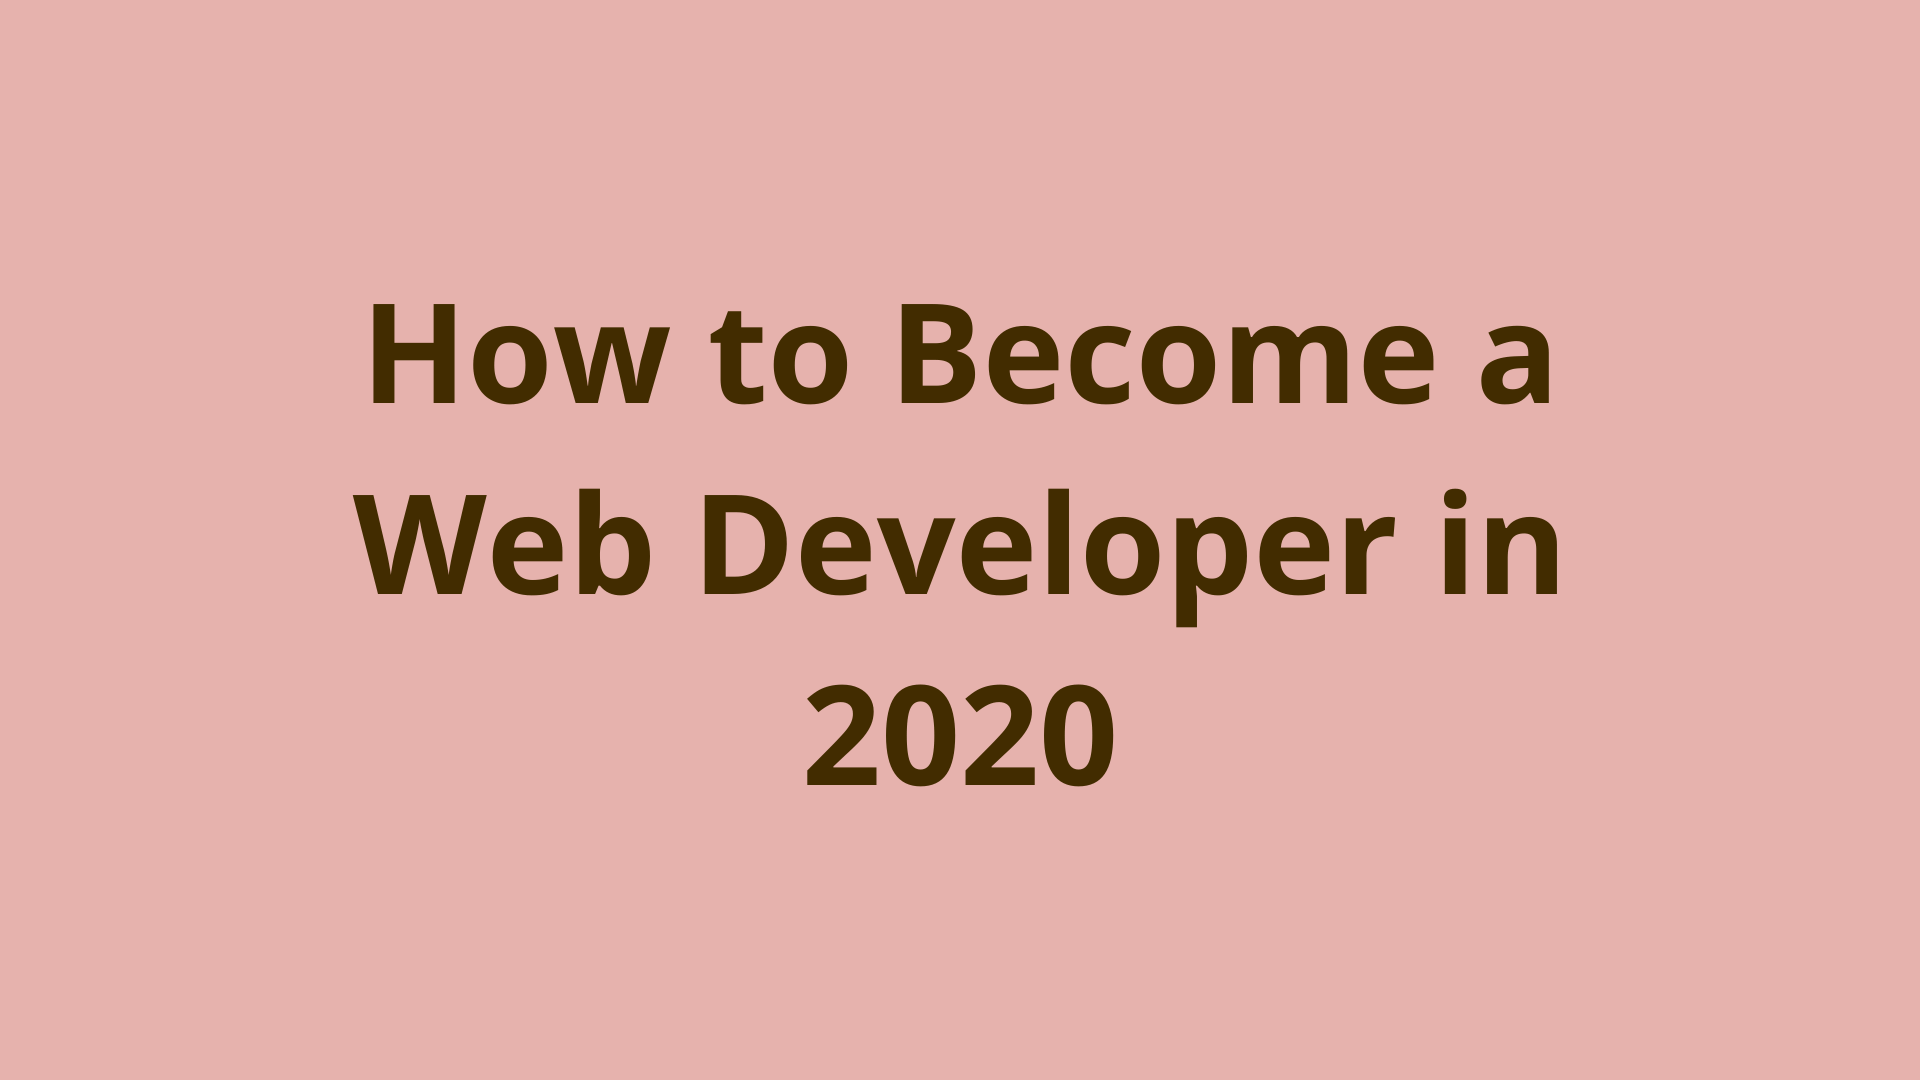 Image of How to become a web developer in 2020